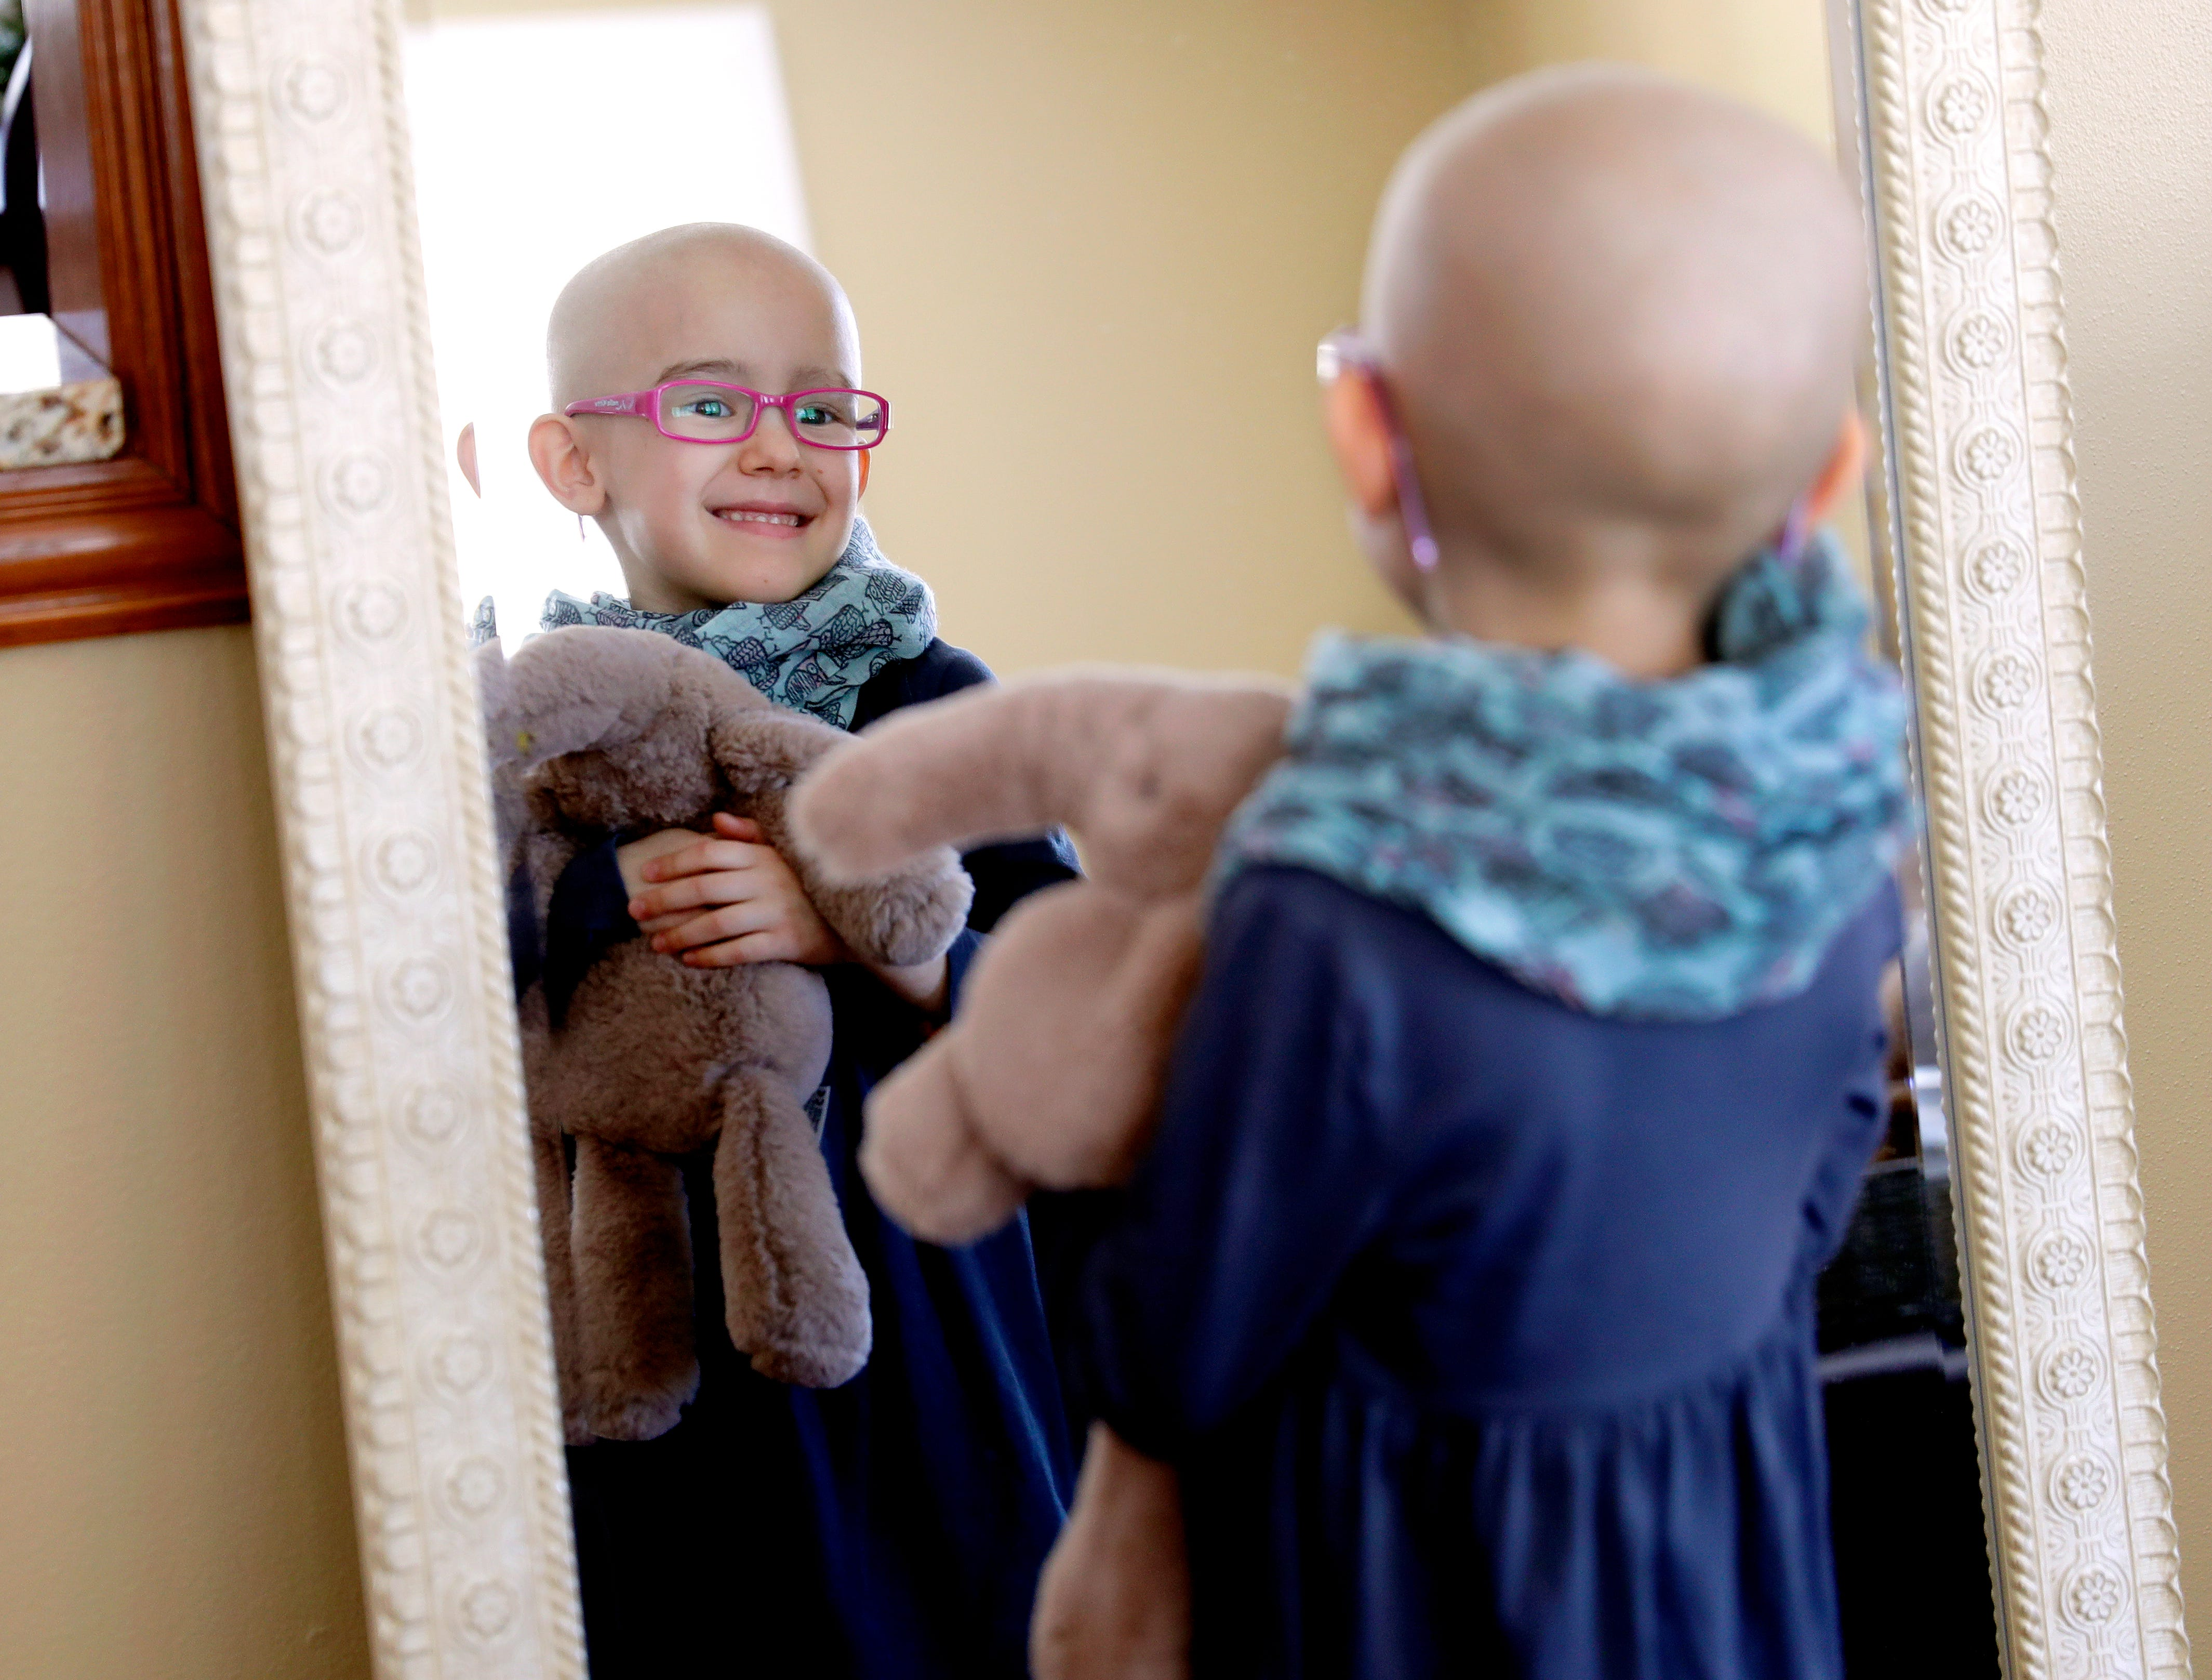 Lily Wertel, 6, smiles in a mirror at her family's home in Wrightstown, Wis. with her stuffed elephant, Toby. A benefit for Lily, who has cancer, is scheduled for May 19, 2019, at the Riverside Ballroom in Green Bay, Wis.